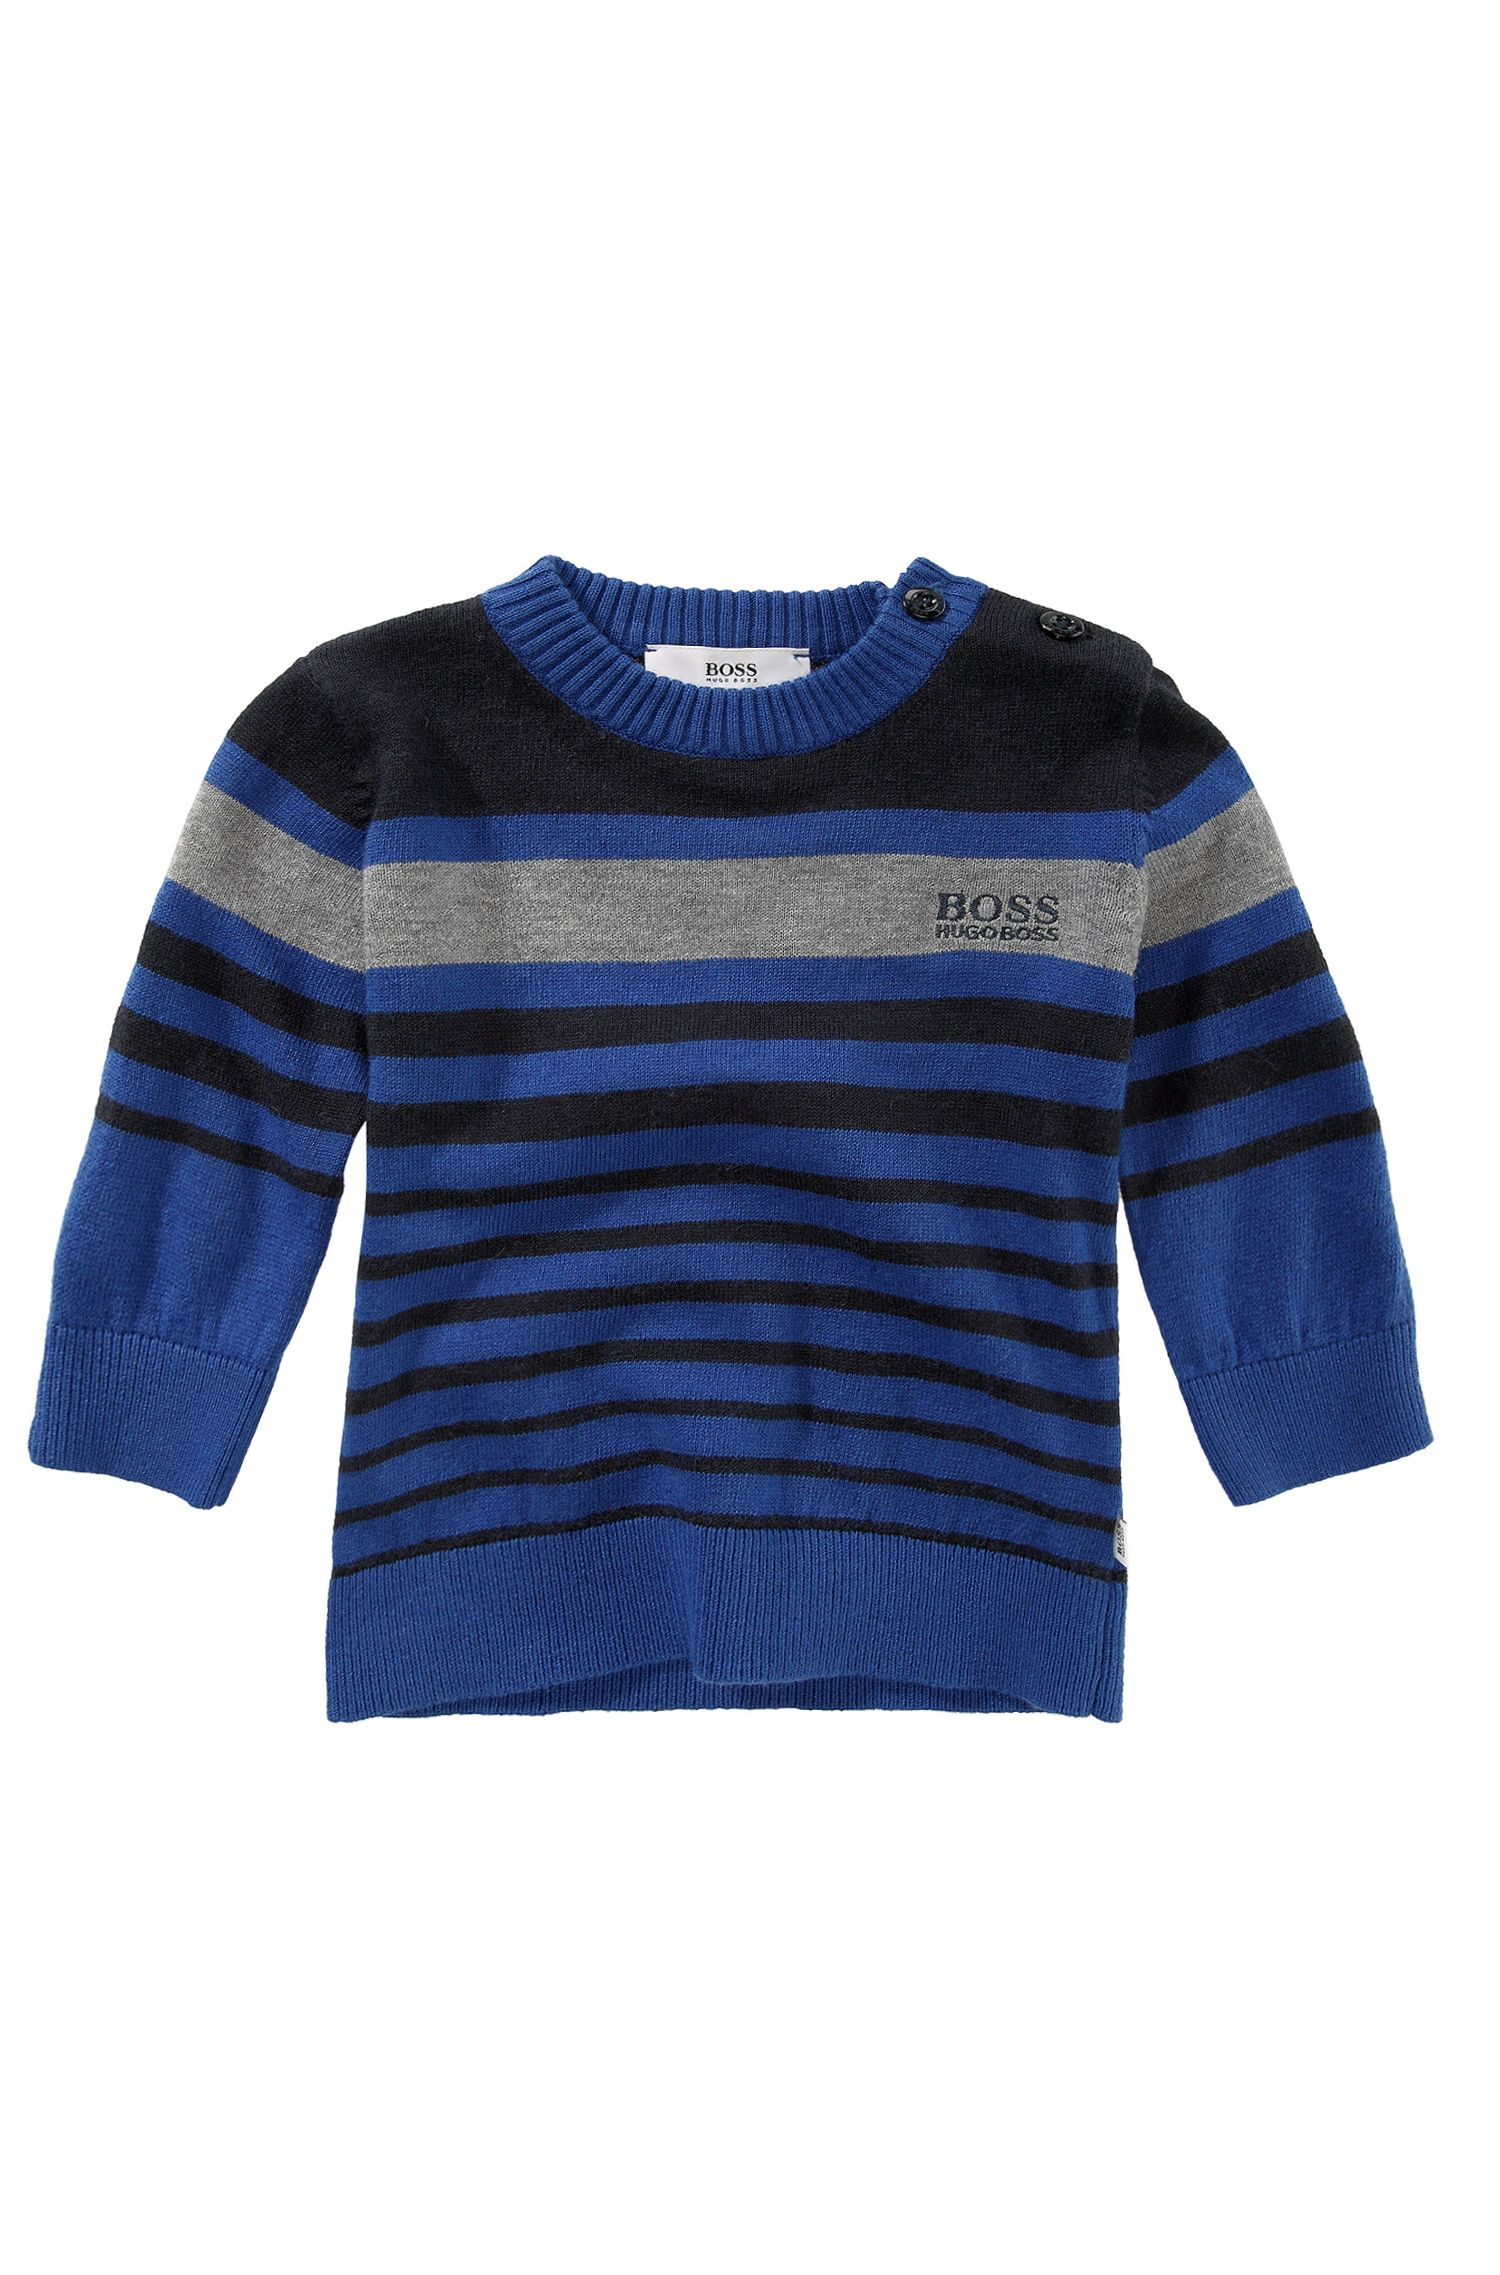 'J05246' | Toddler Cotton-Wool Blend Crewneck Sweater